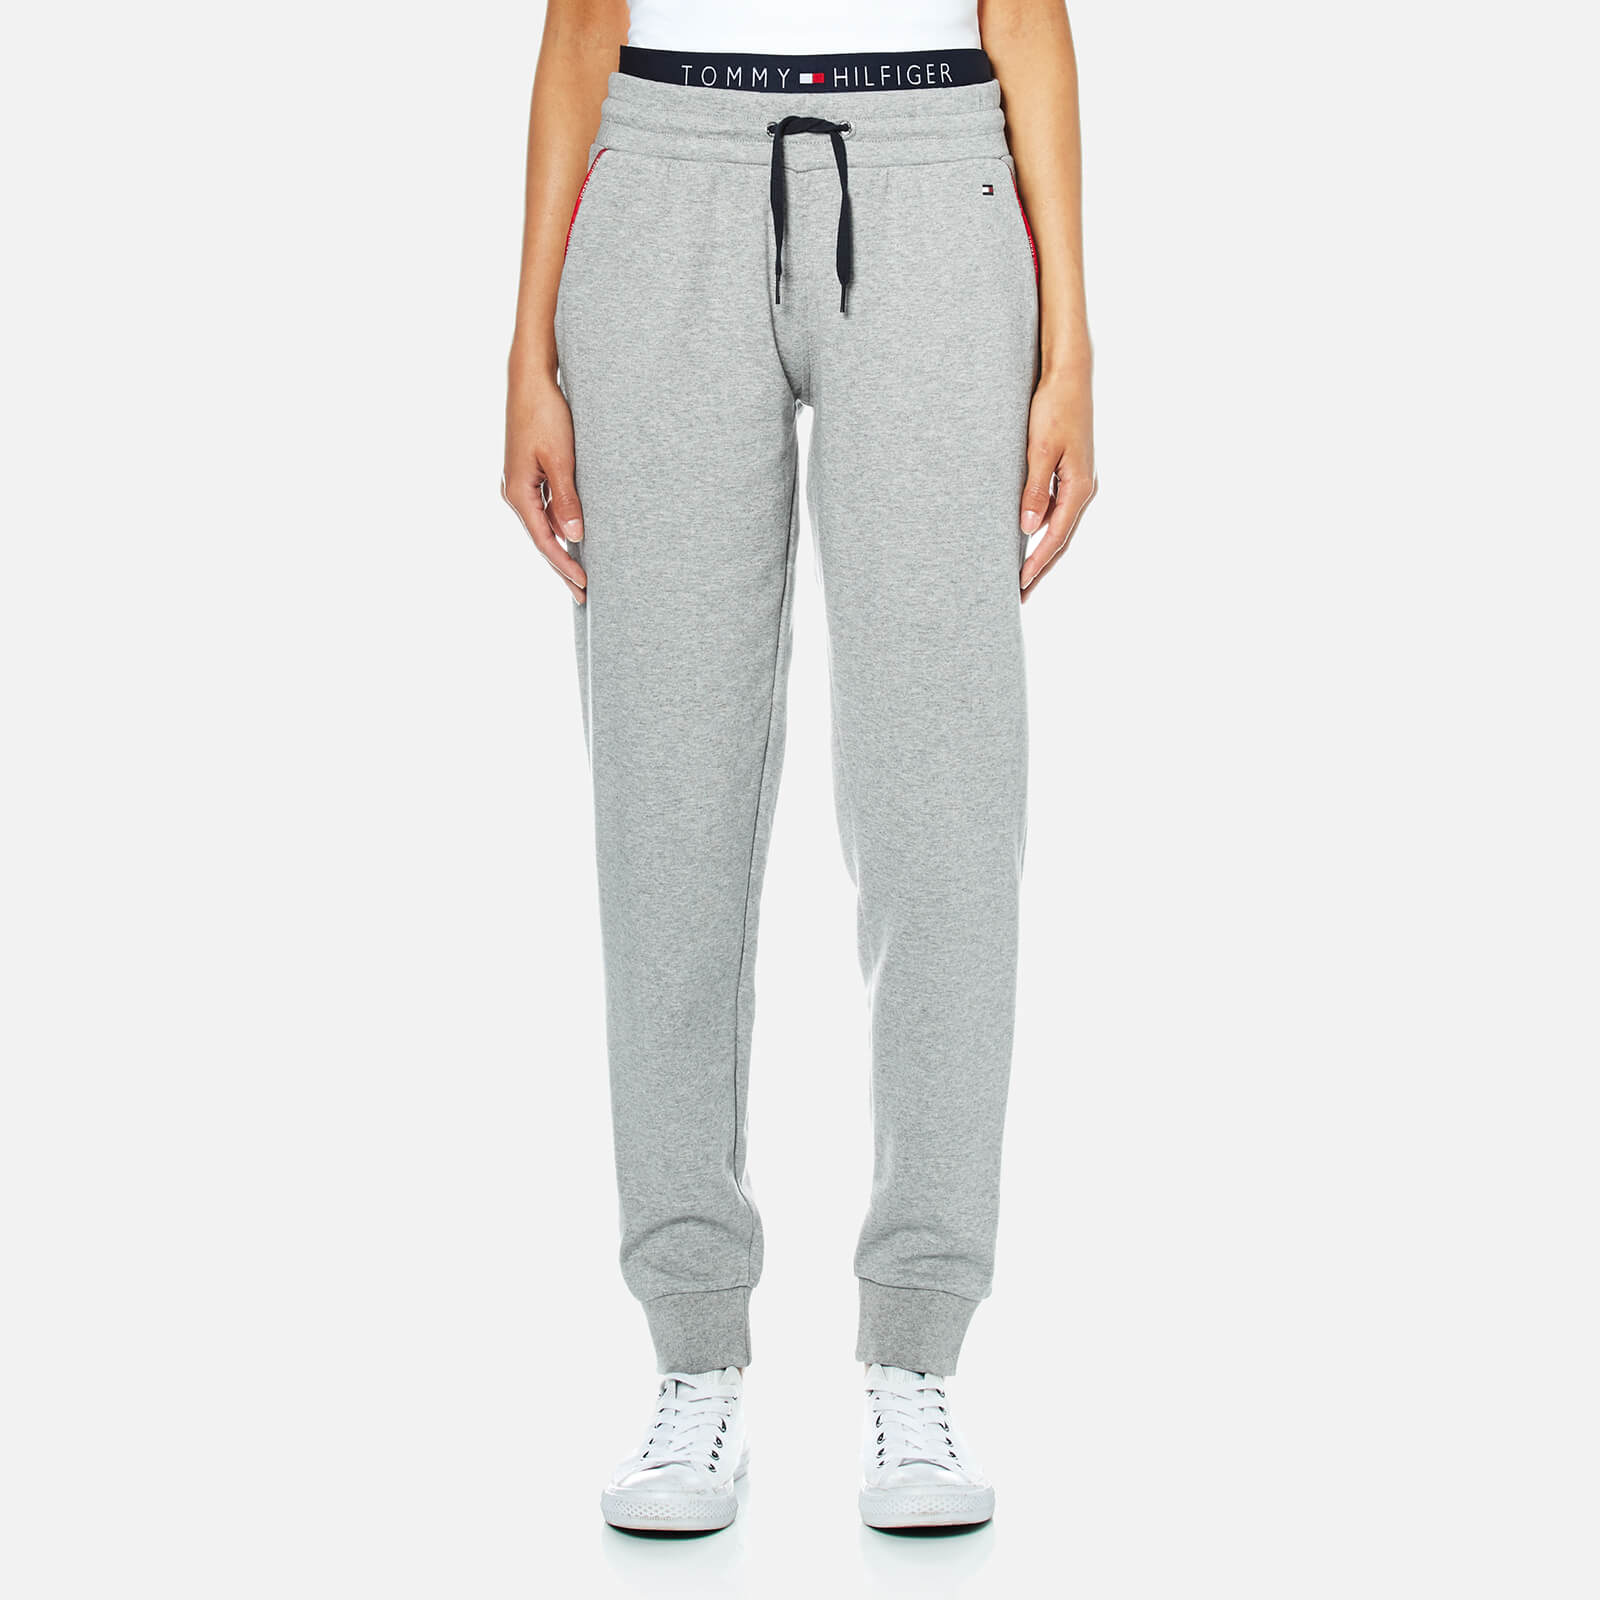 922a03a72 Tommy Hilfiger Women's Track Pants - Mid Grey Heather Clothing | TheHut.com